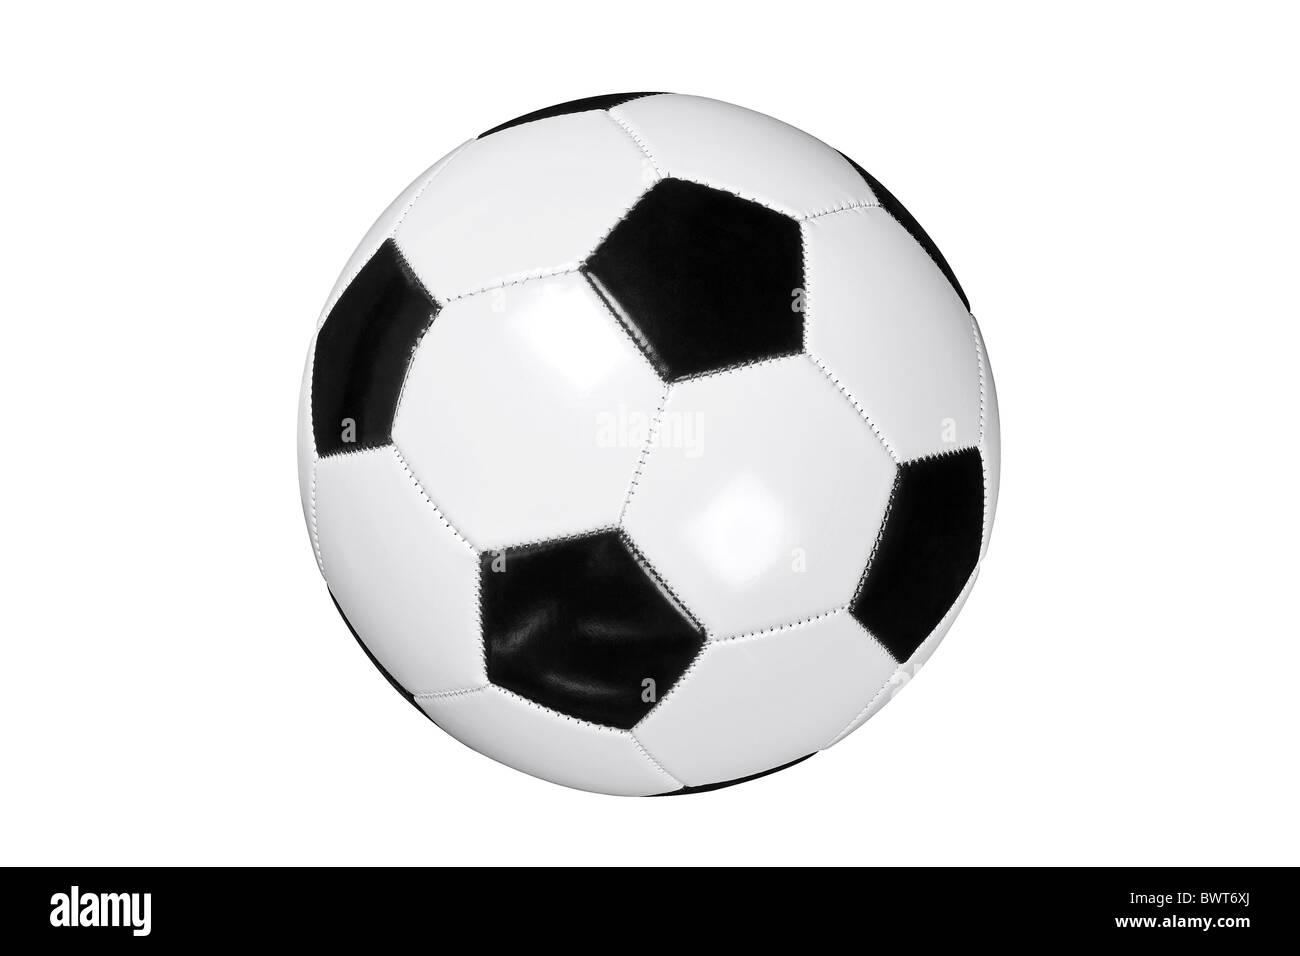 Photo of white and black leather football or soccer ball isolated on white background with clipping path done with - Stock Image